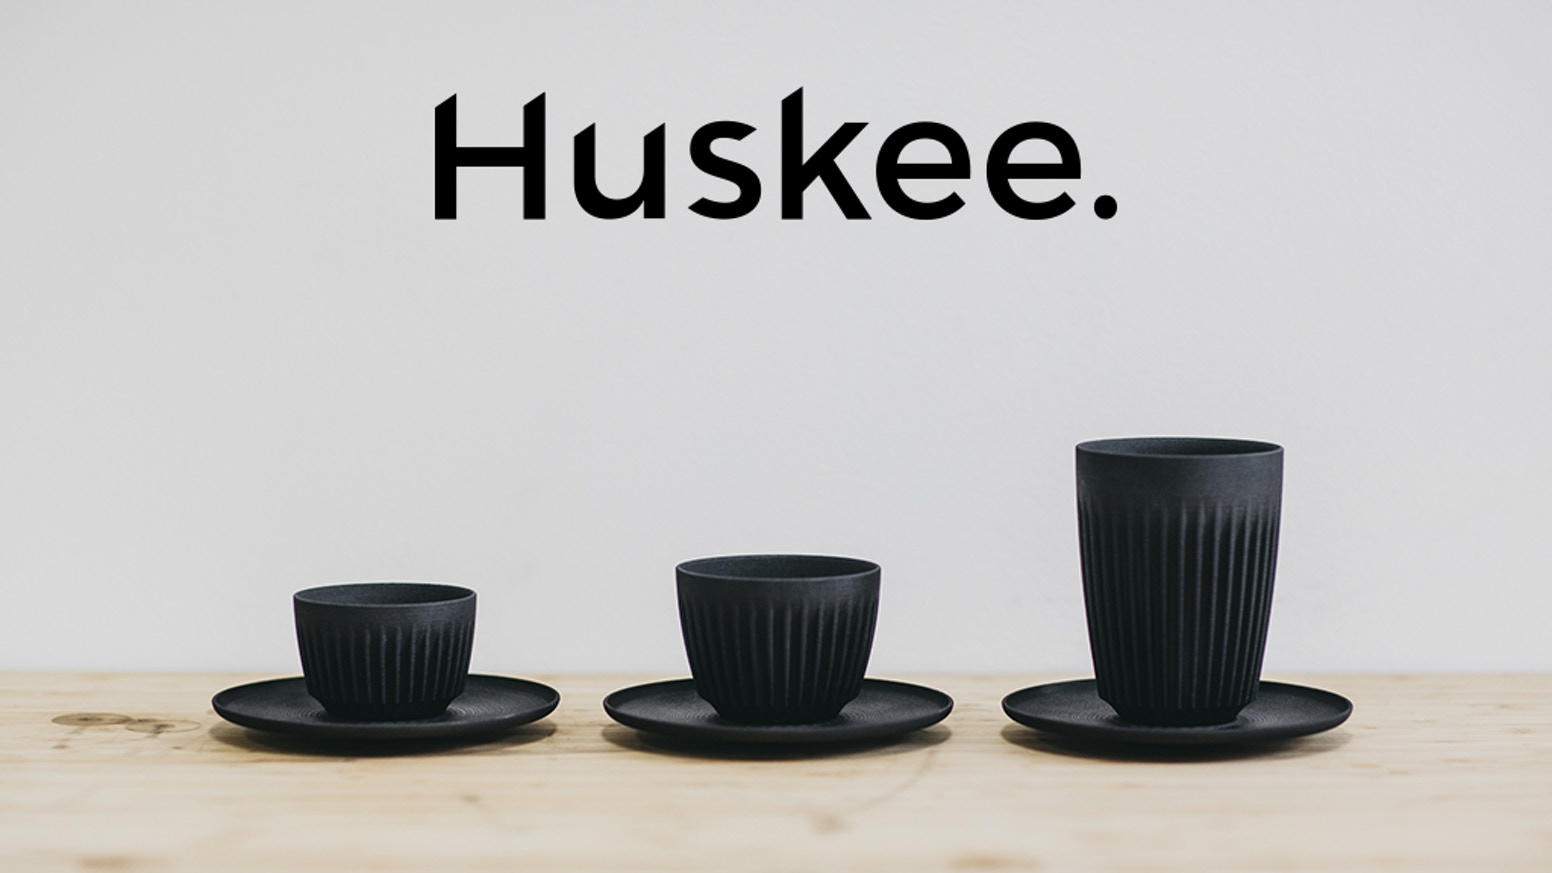 HuskeeCup is a durable, reusable cup made from coffee husk. It's comfortable to hold, and keeps your coffee hotter for longer!